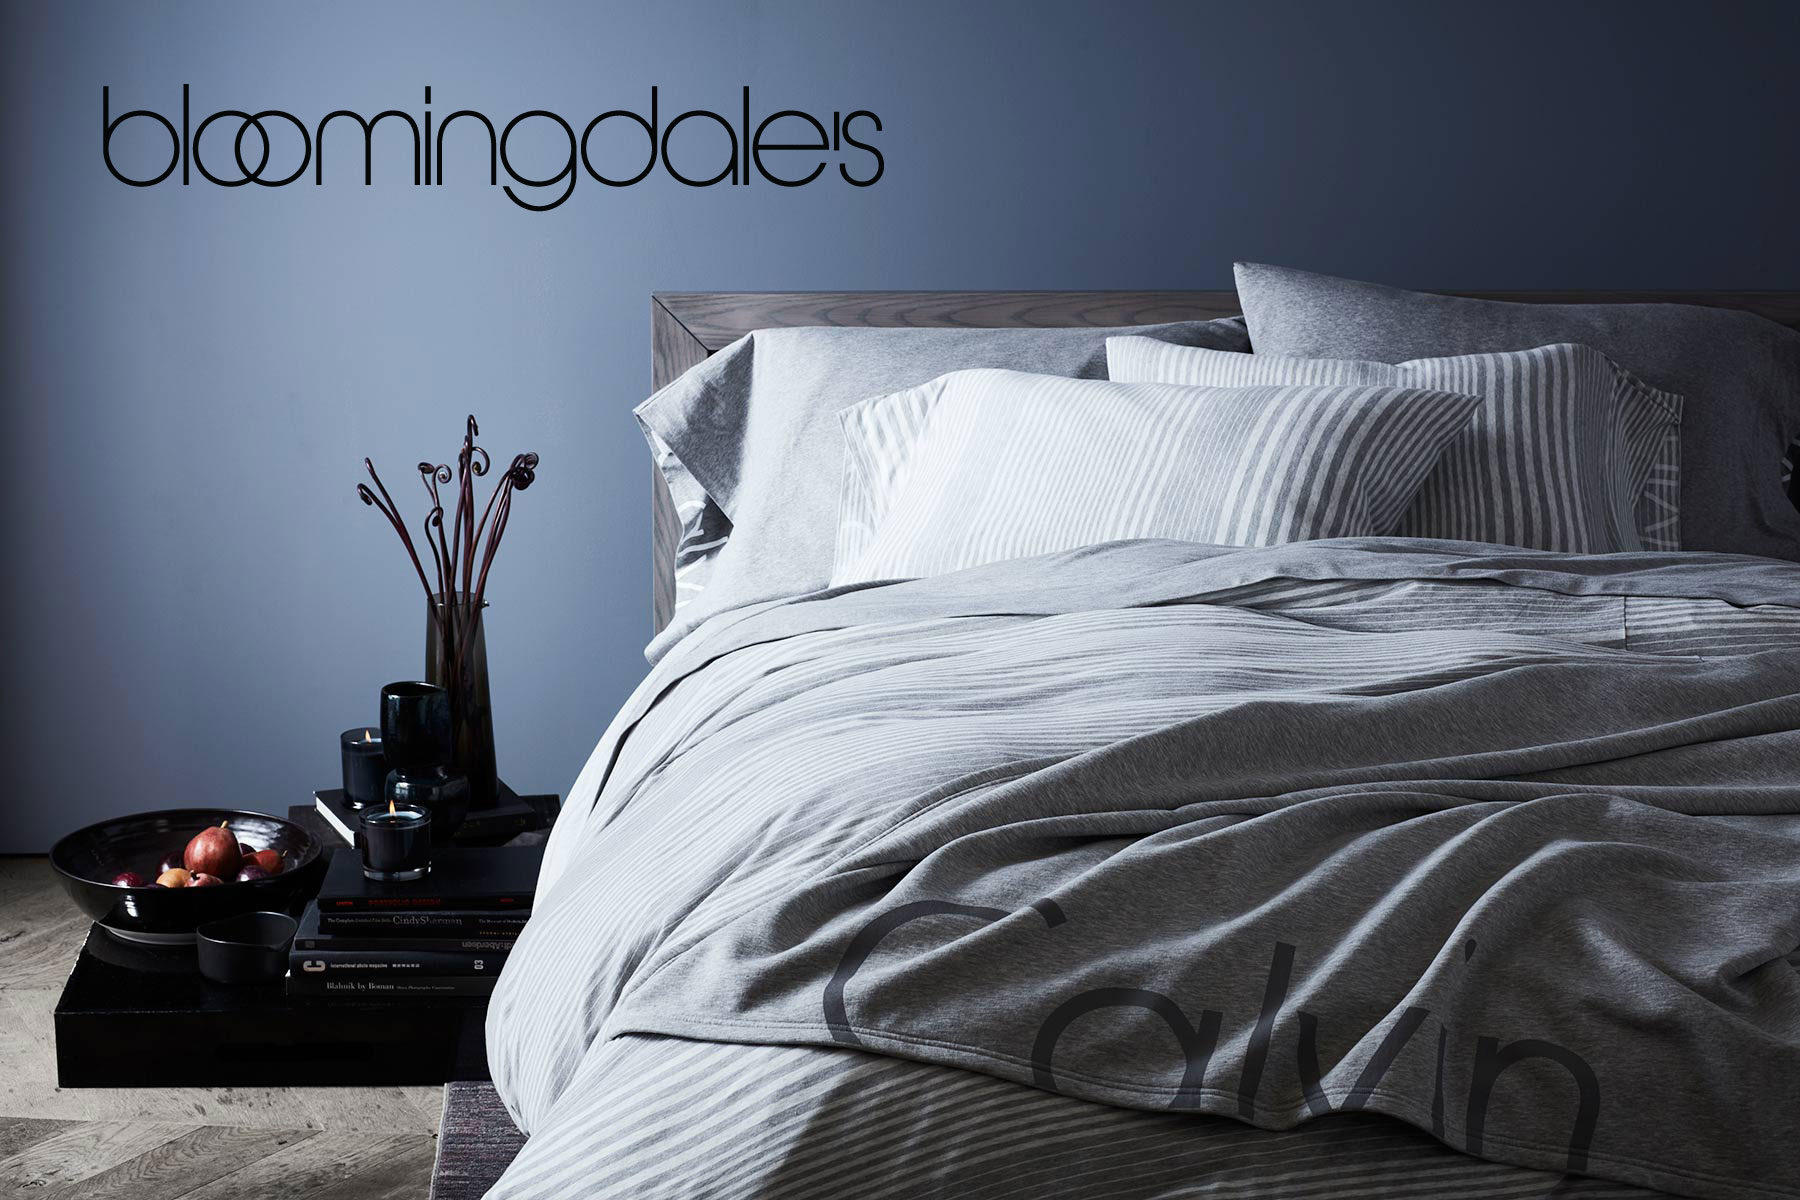 NEW WORK - Bloomingdales